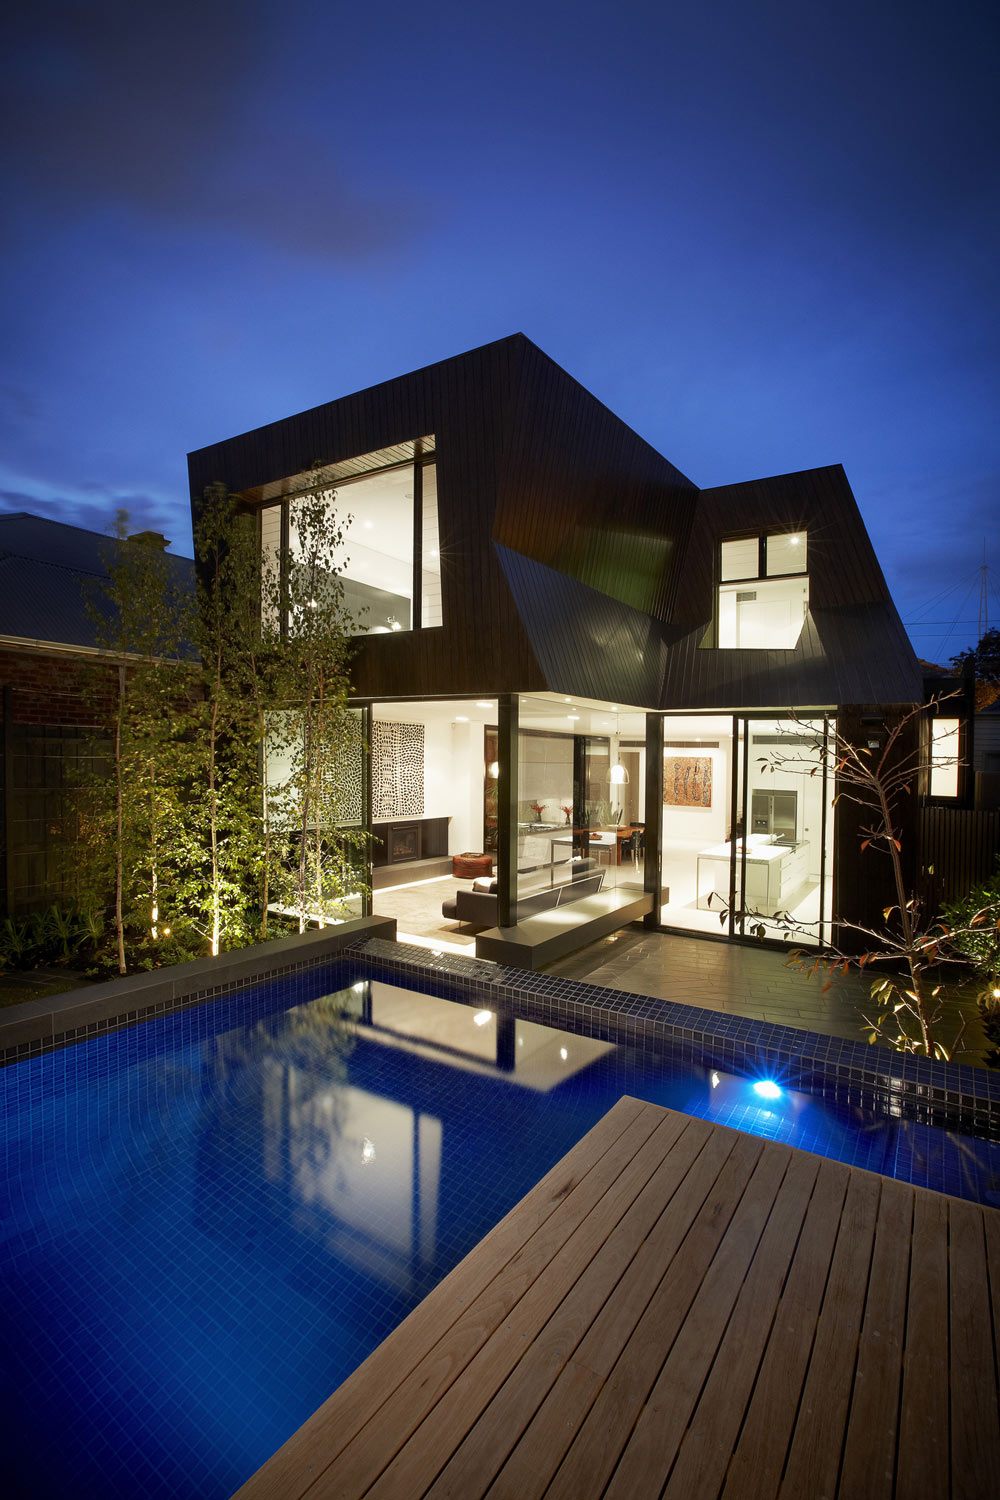 Enclave house in melbourne australia by bkk architects for Home architecture melbourne